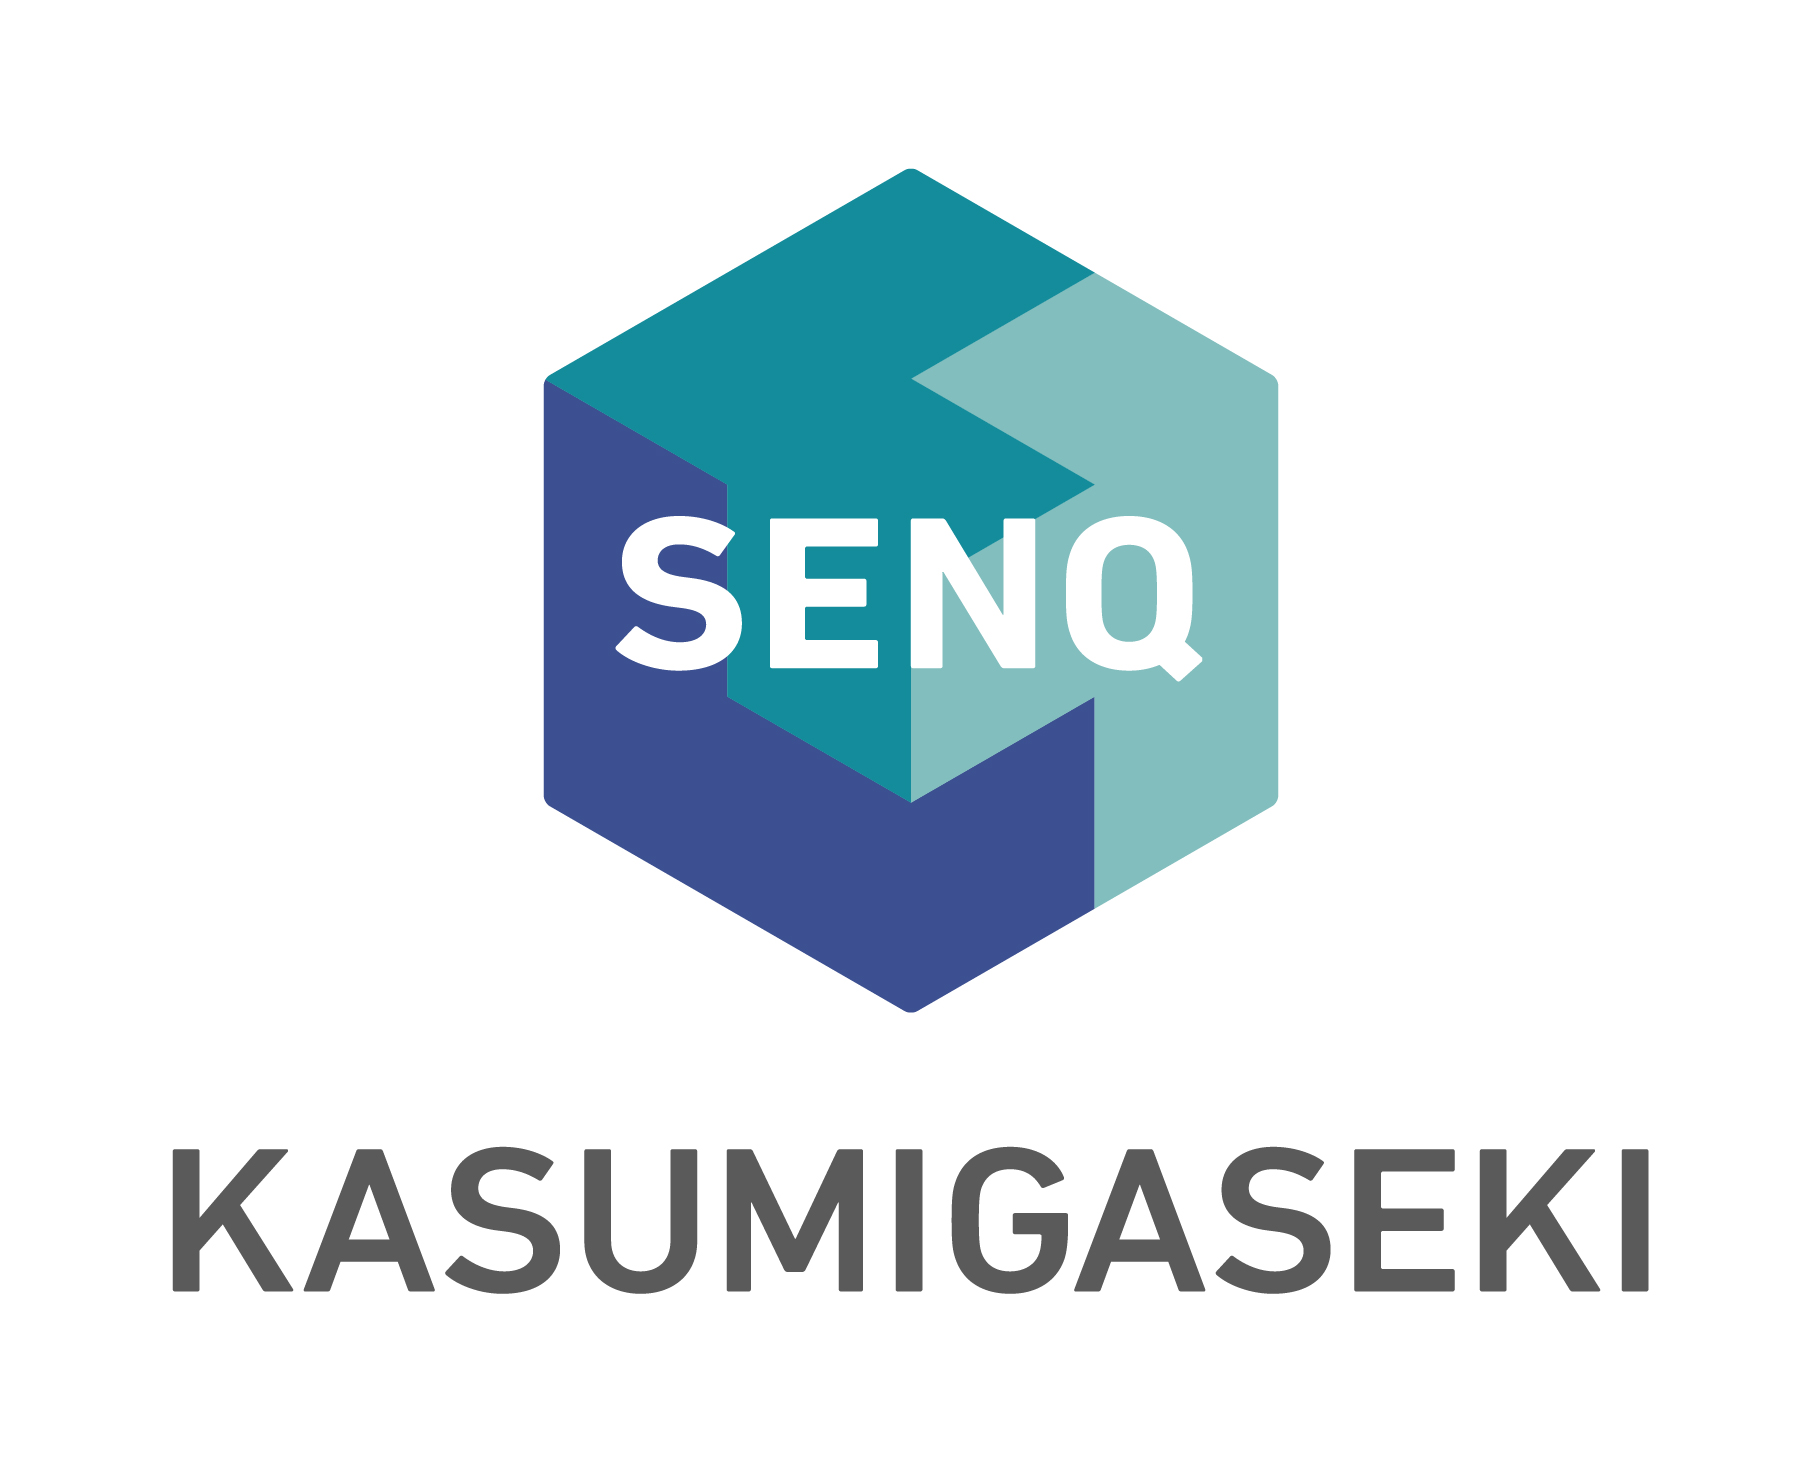 10_SENQ_brandlogo_KASUMIGASEKI_lockup_vertical